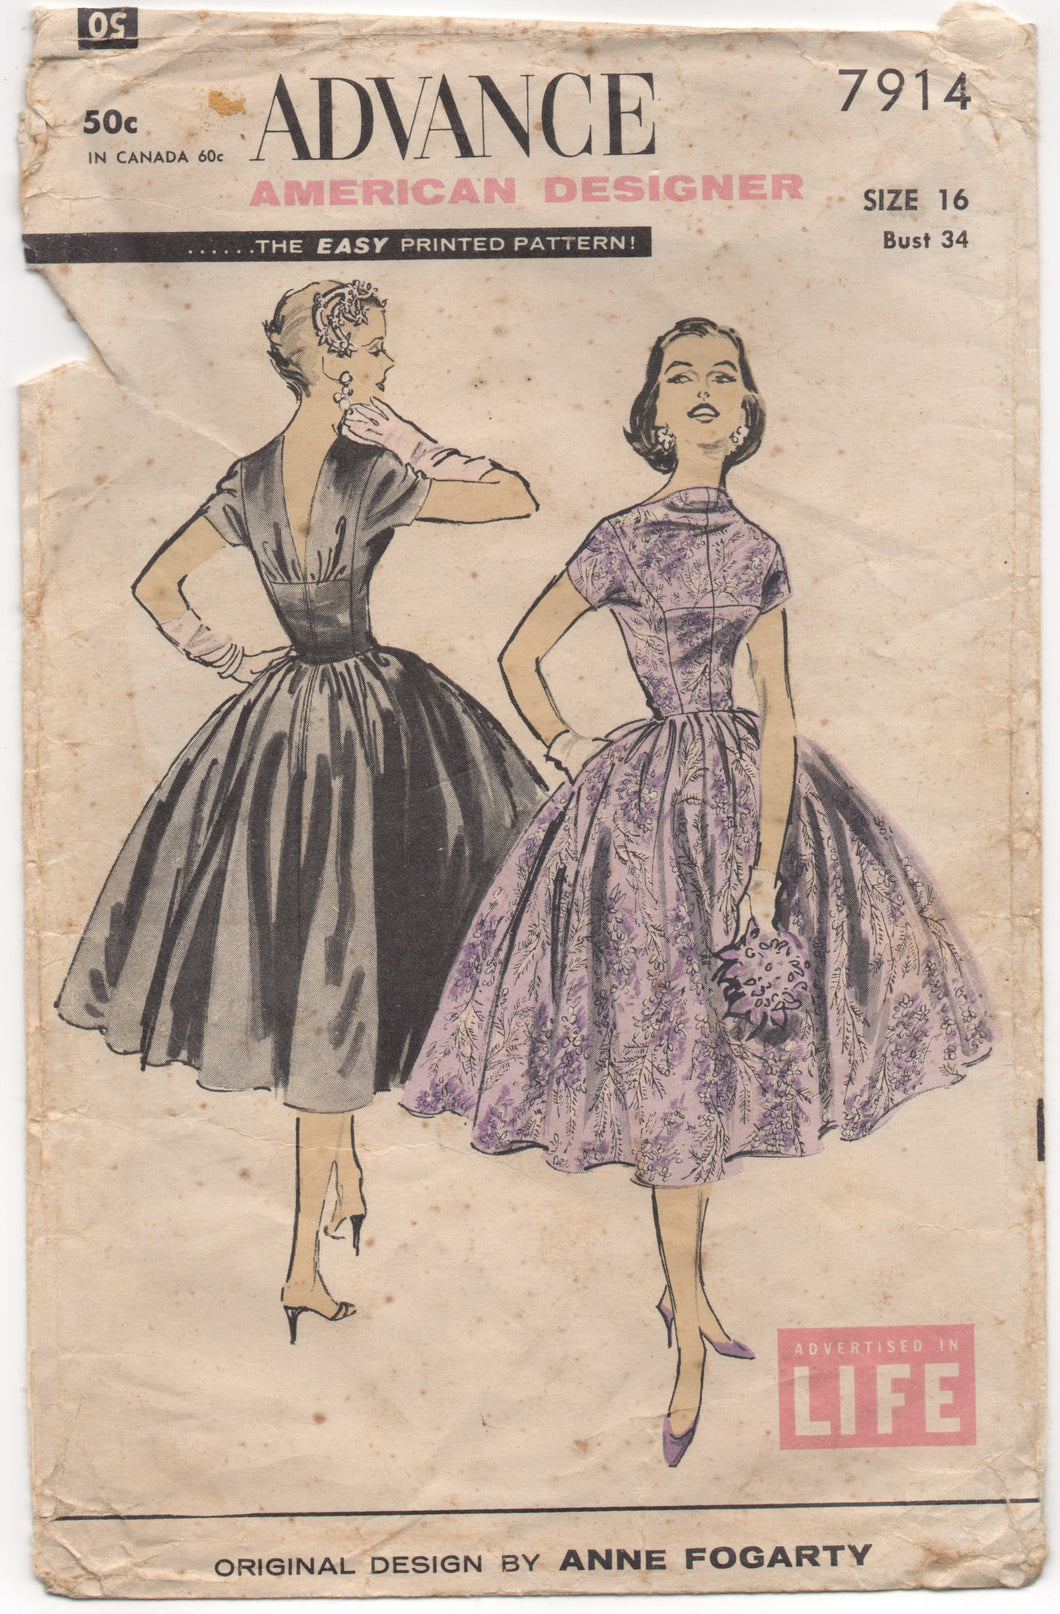 1950's Advance American Designer Evening Dress Pattern with full skirt - Bust 34